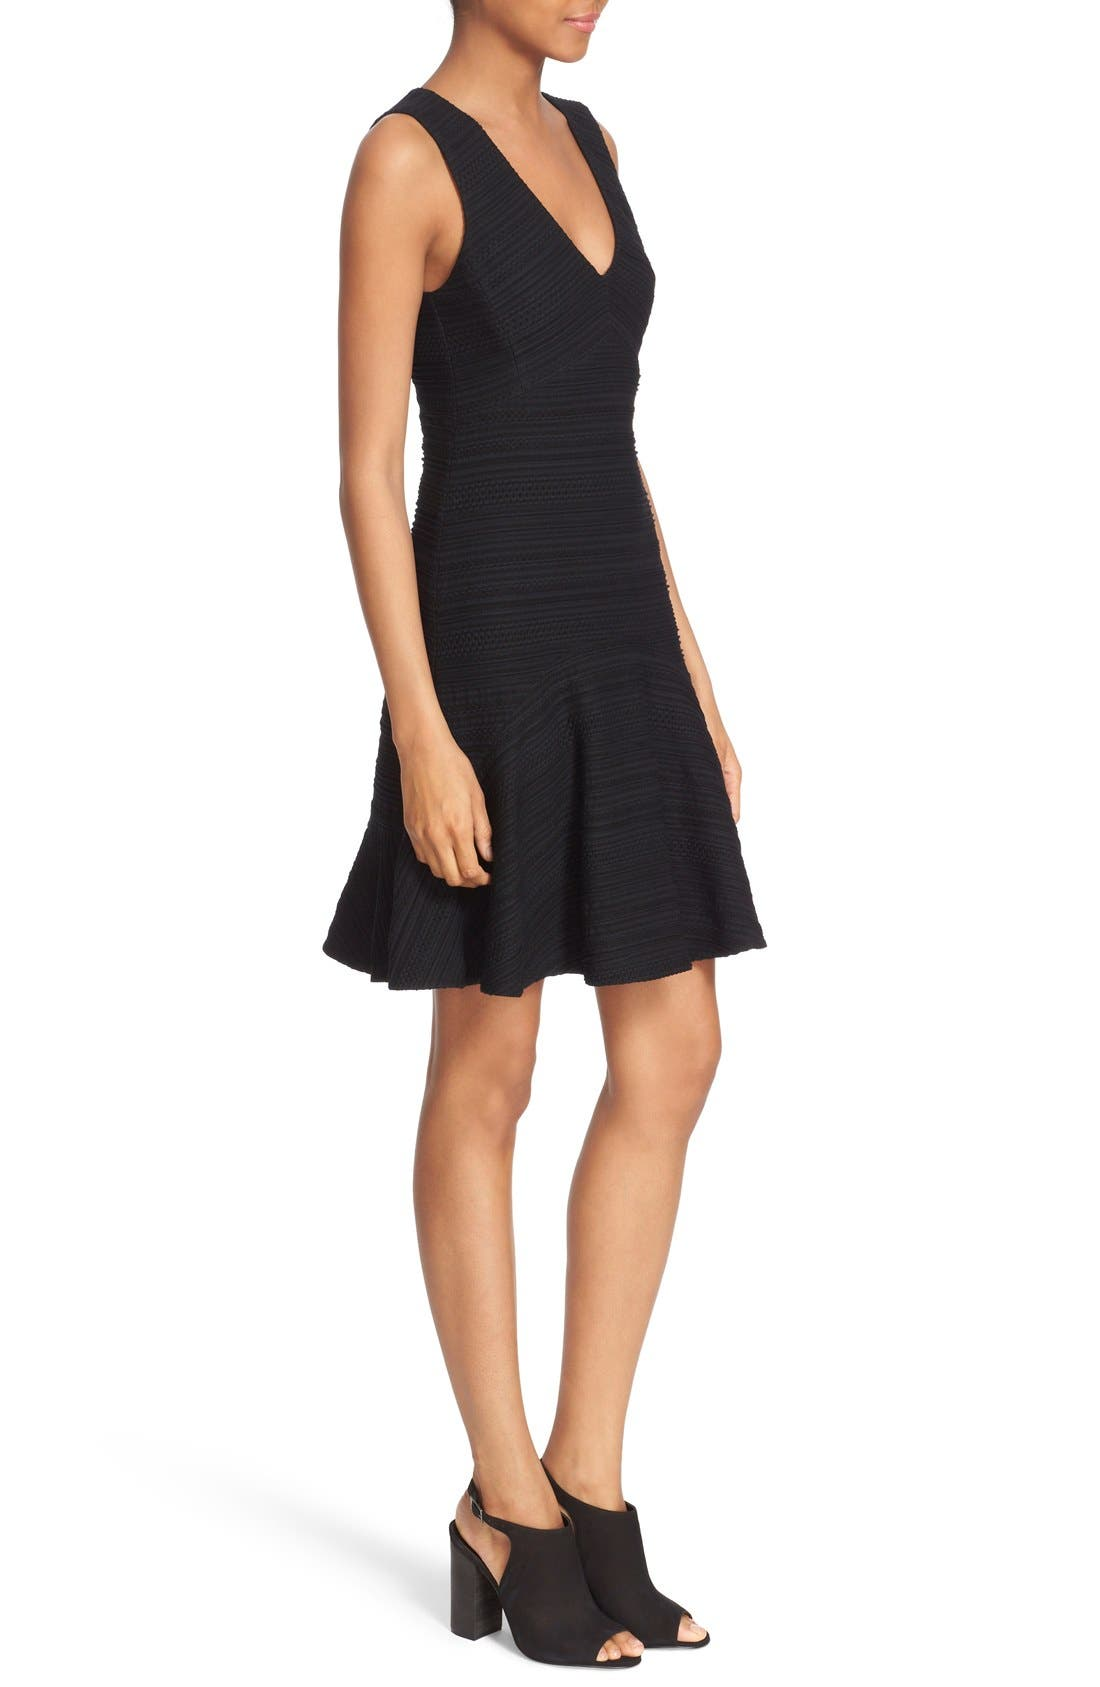 REBECCA TAYLOR, Sleeveless V-Neck Texture Knit Fit & Flare Dress, Alternate thumbnail 2, color, 001